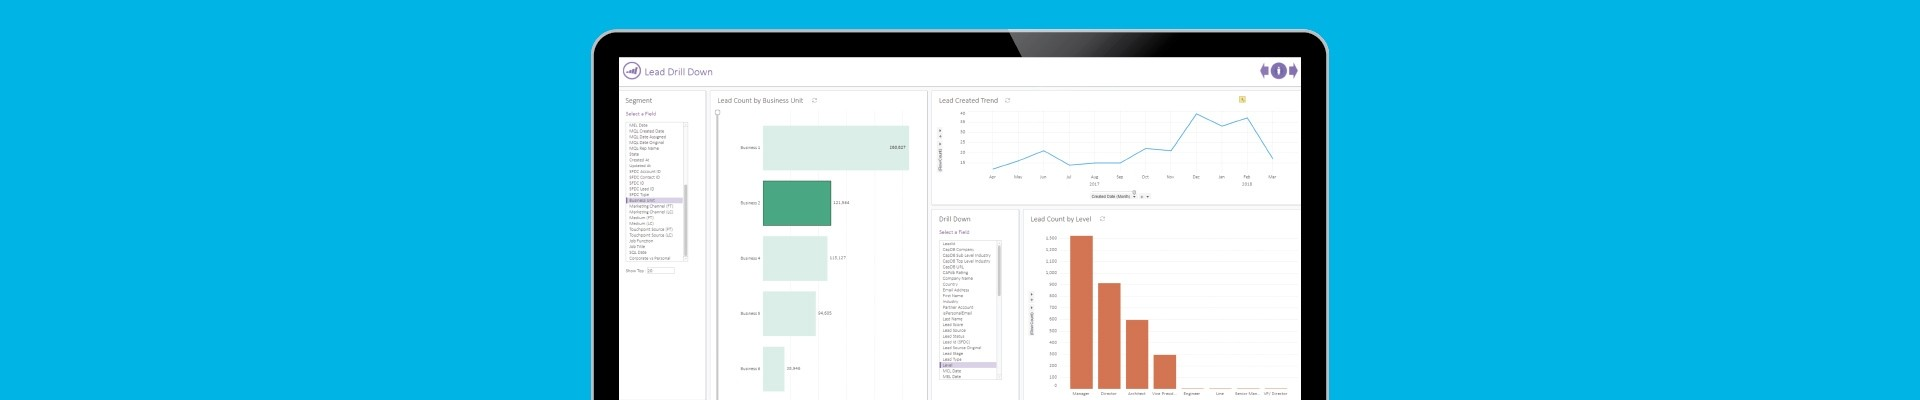 Command Center for Marketo Insights in TIBCO Spotfire®